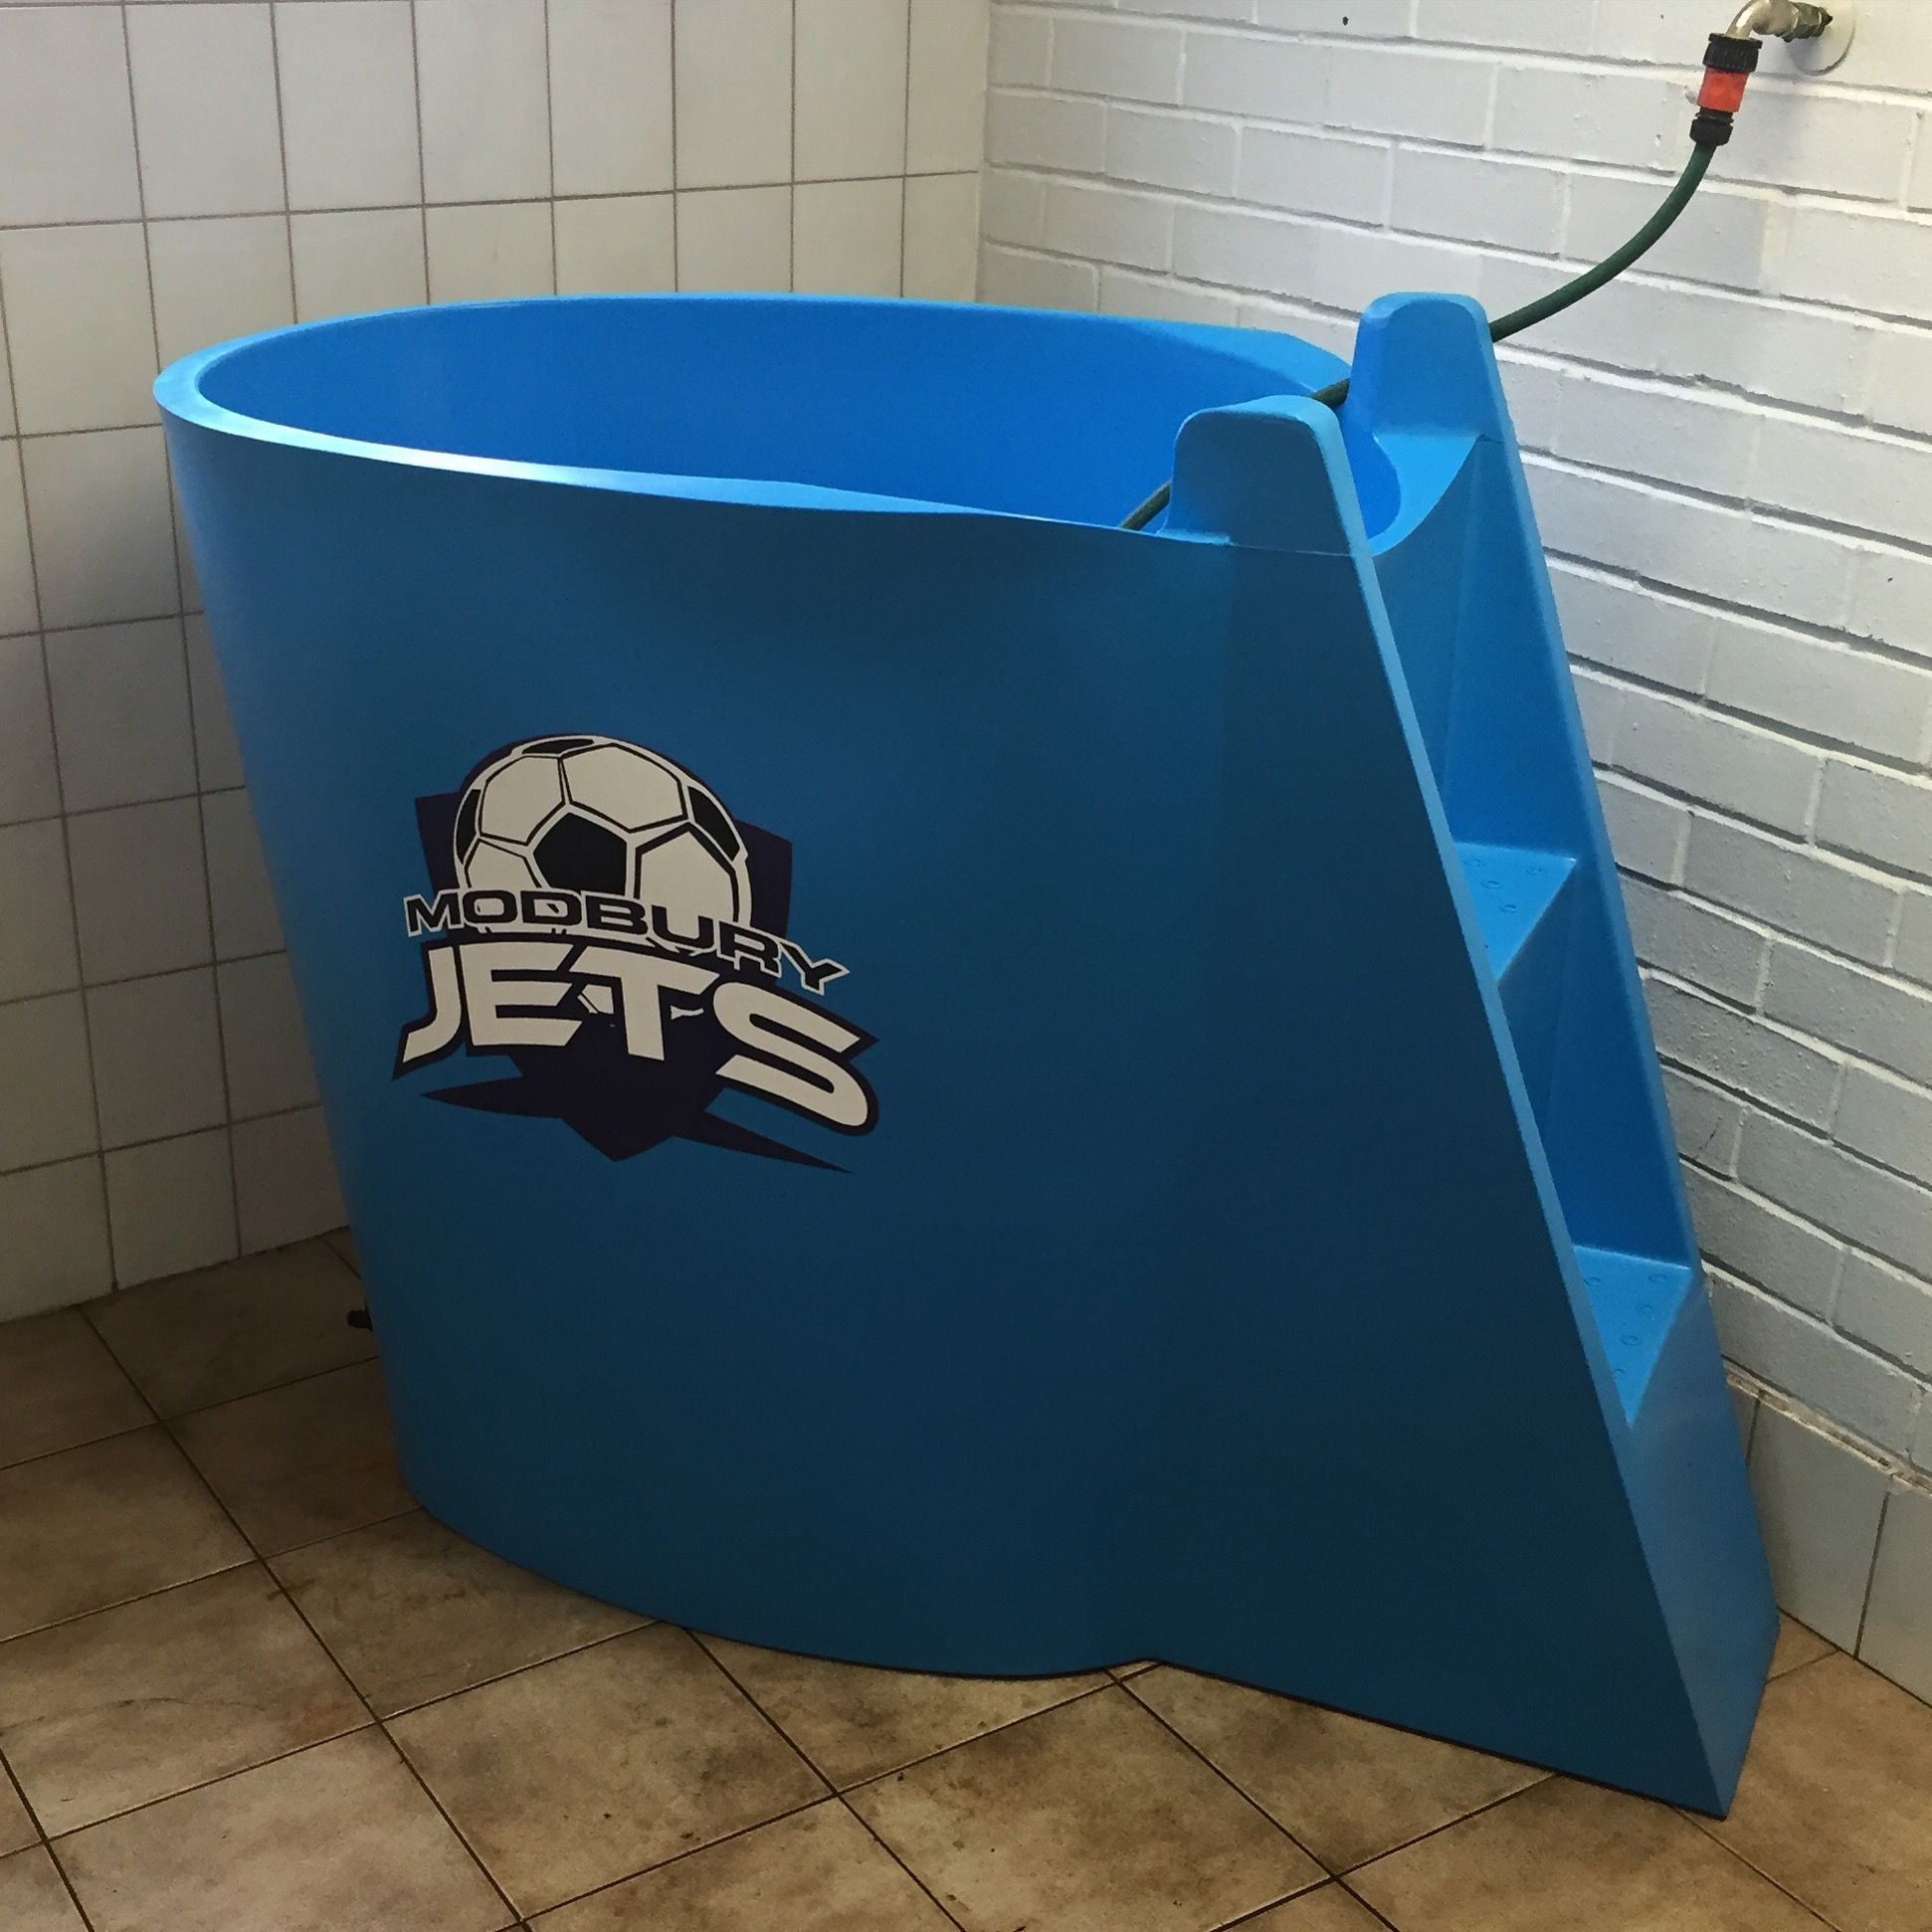 Pin by Pride on the Line on Ice bath tubs | Pinterest | Bath tubs